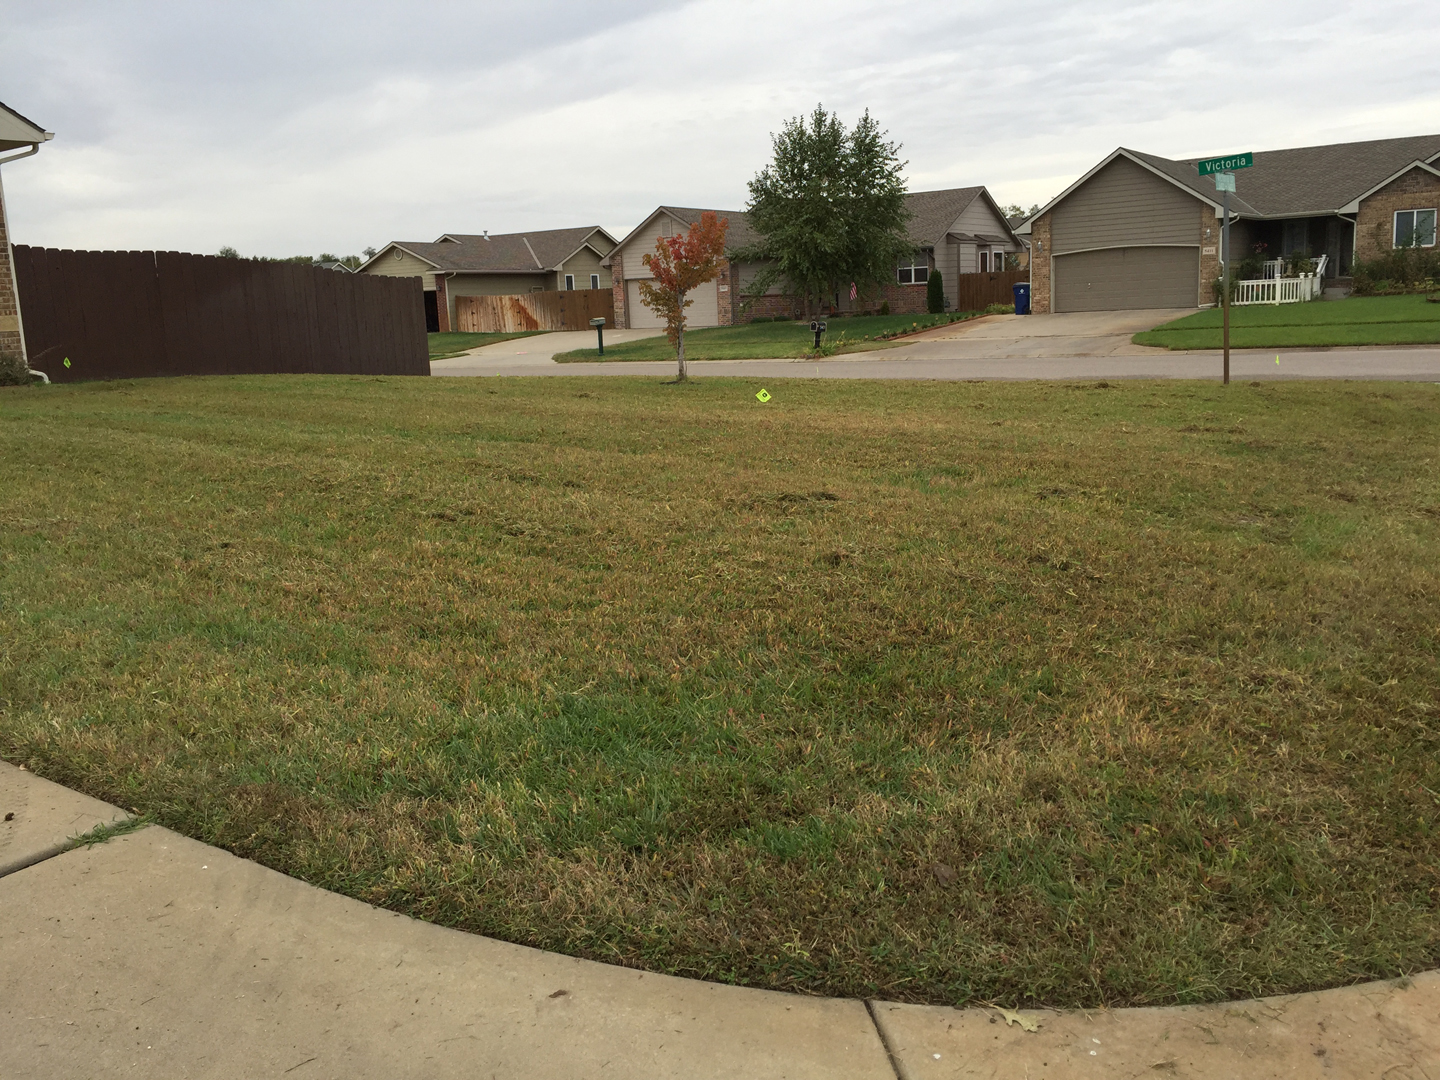 Lawn care service for wichita wichita lawn care company for Lawn and garden services